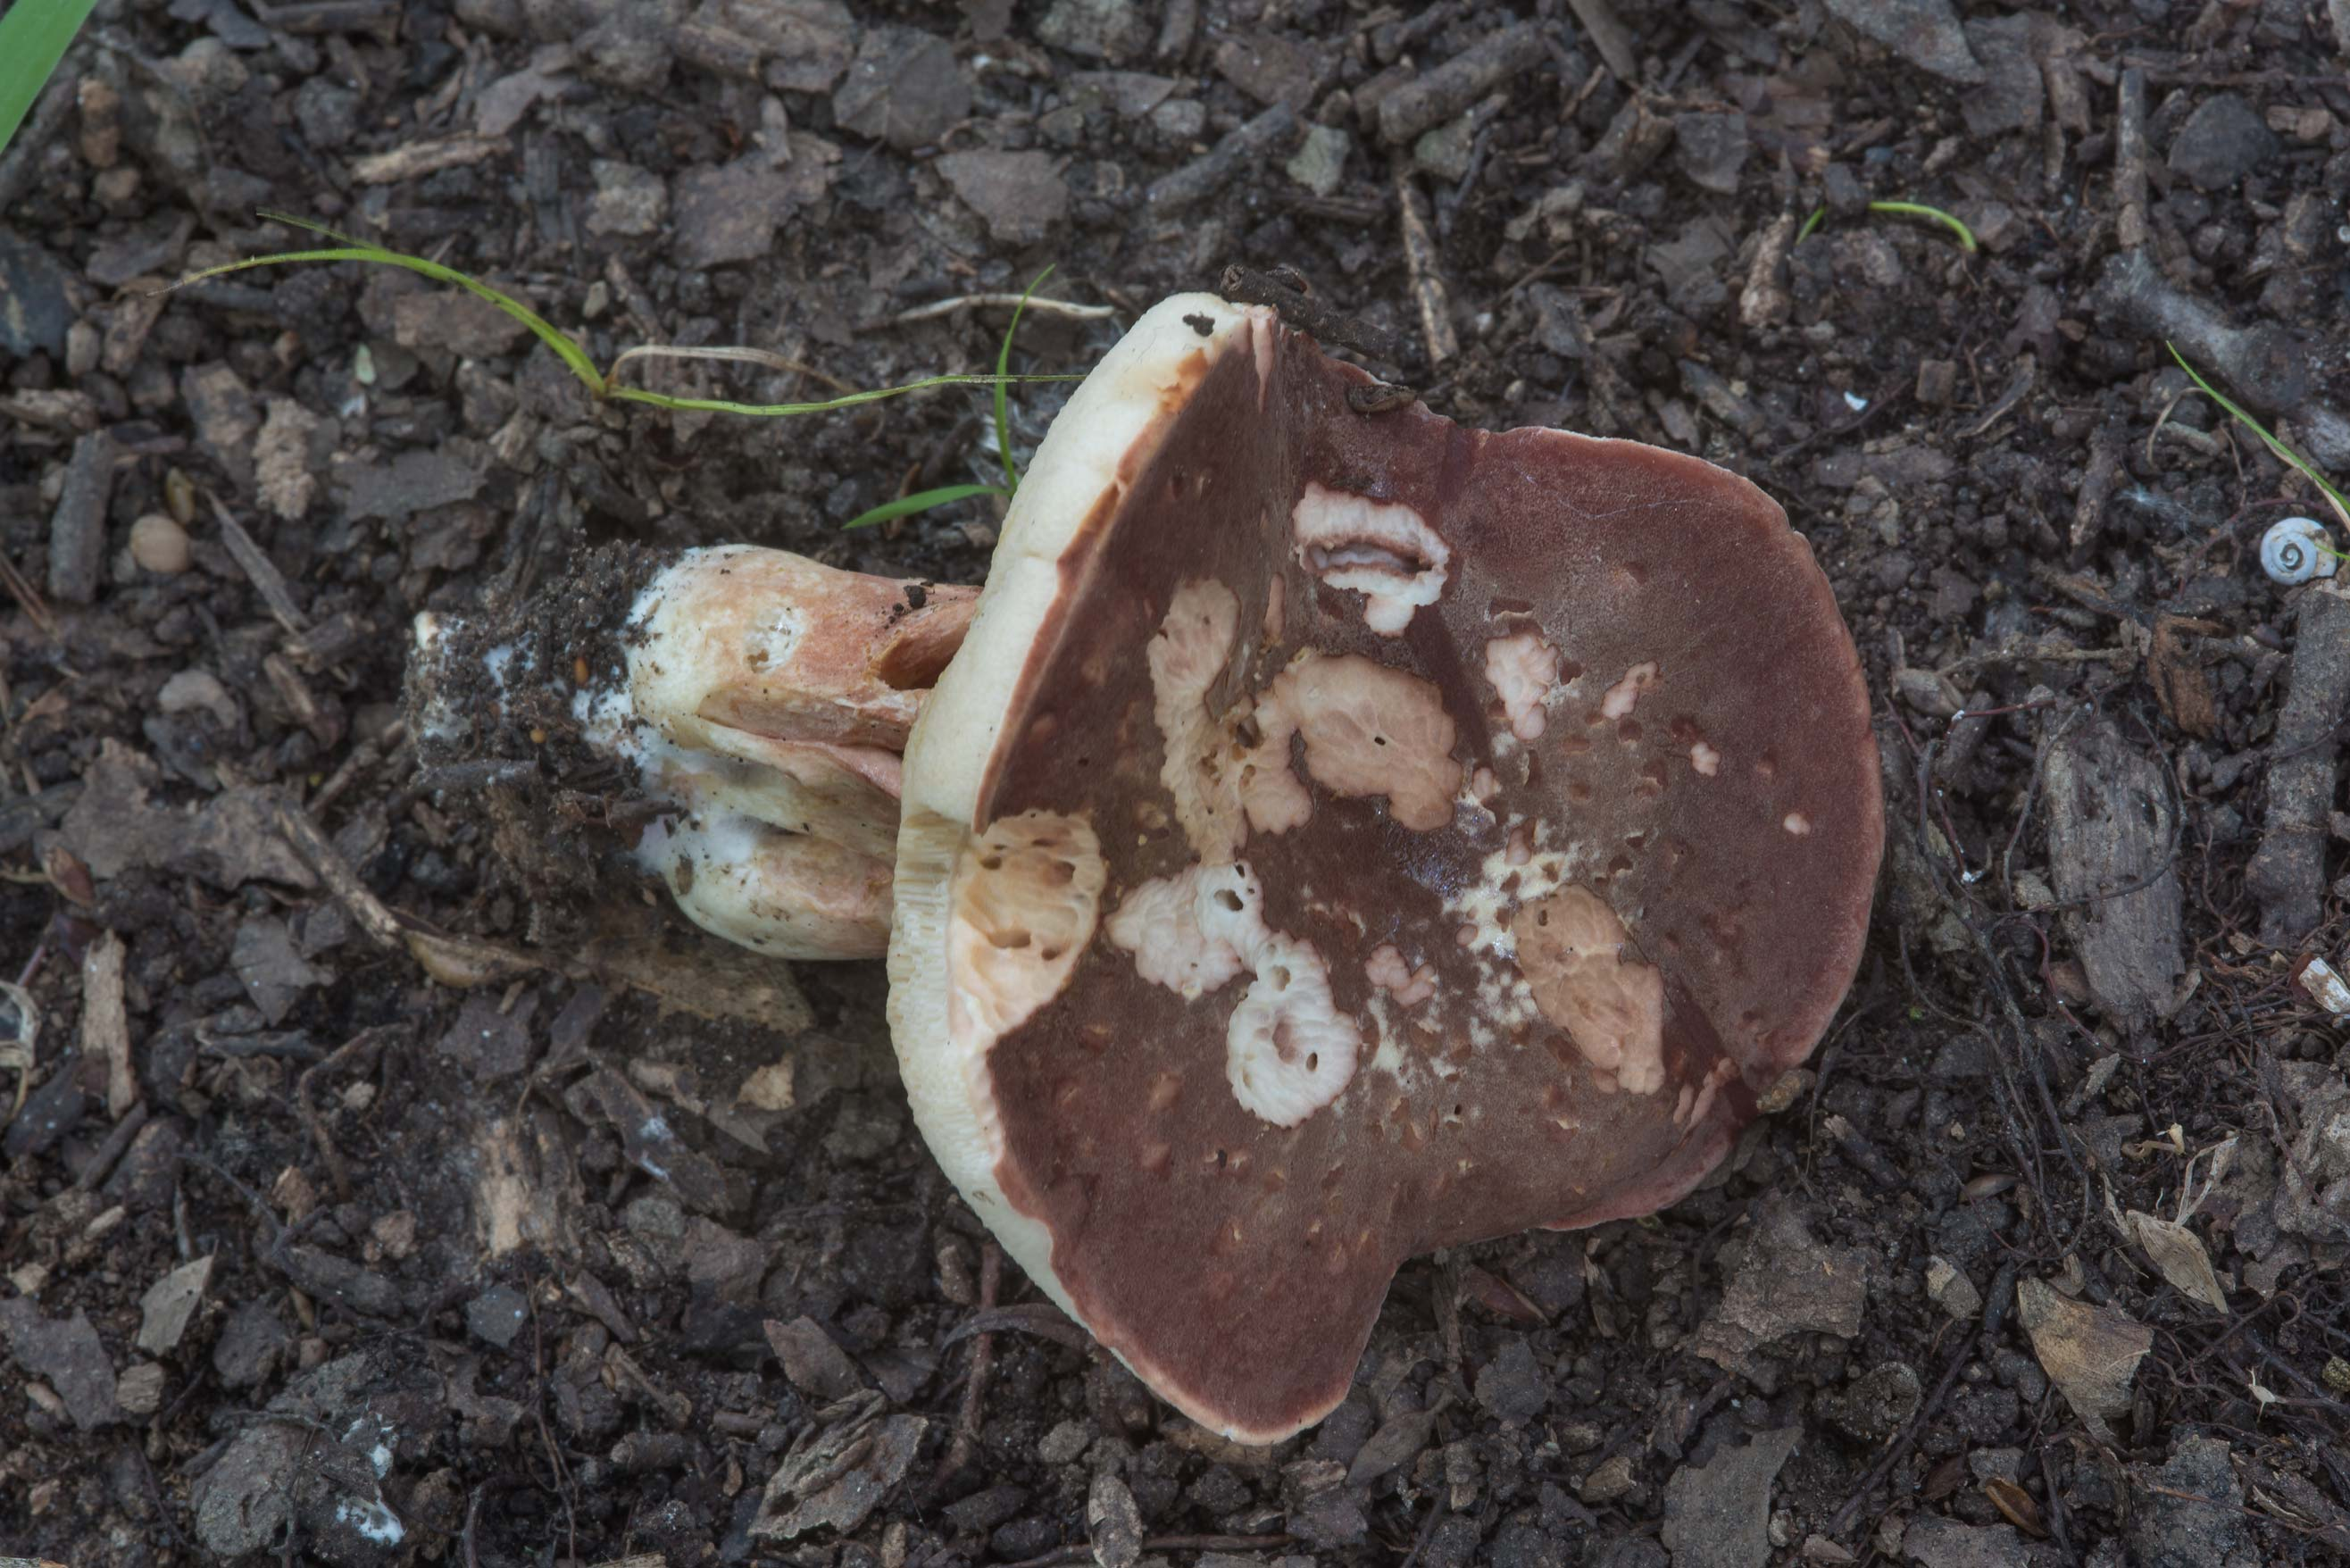 Bolete mushroom Xanthoconium purpureum in Lick Creek Park. College Station, Texas